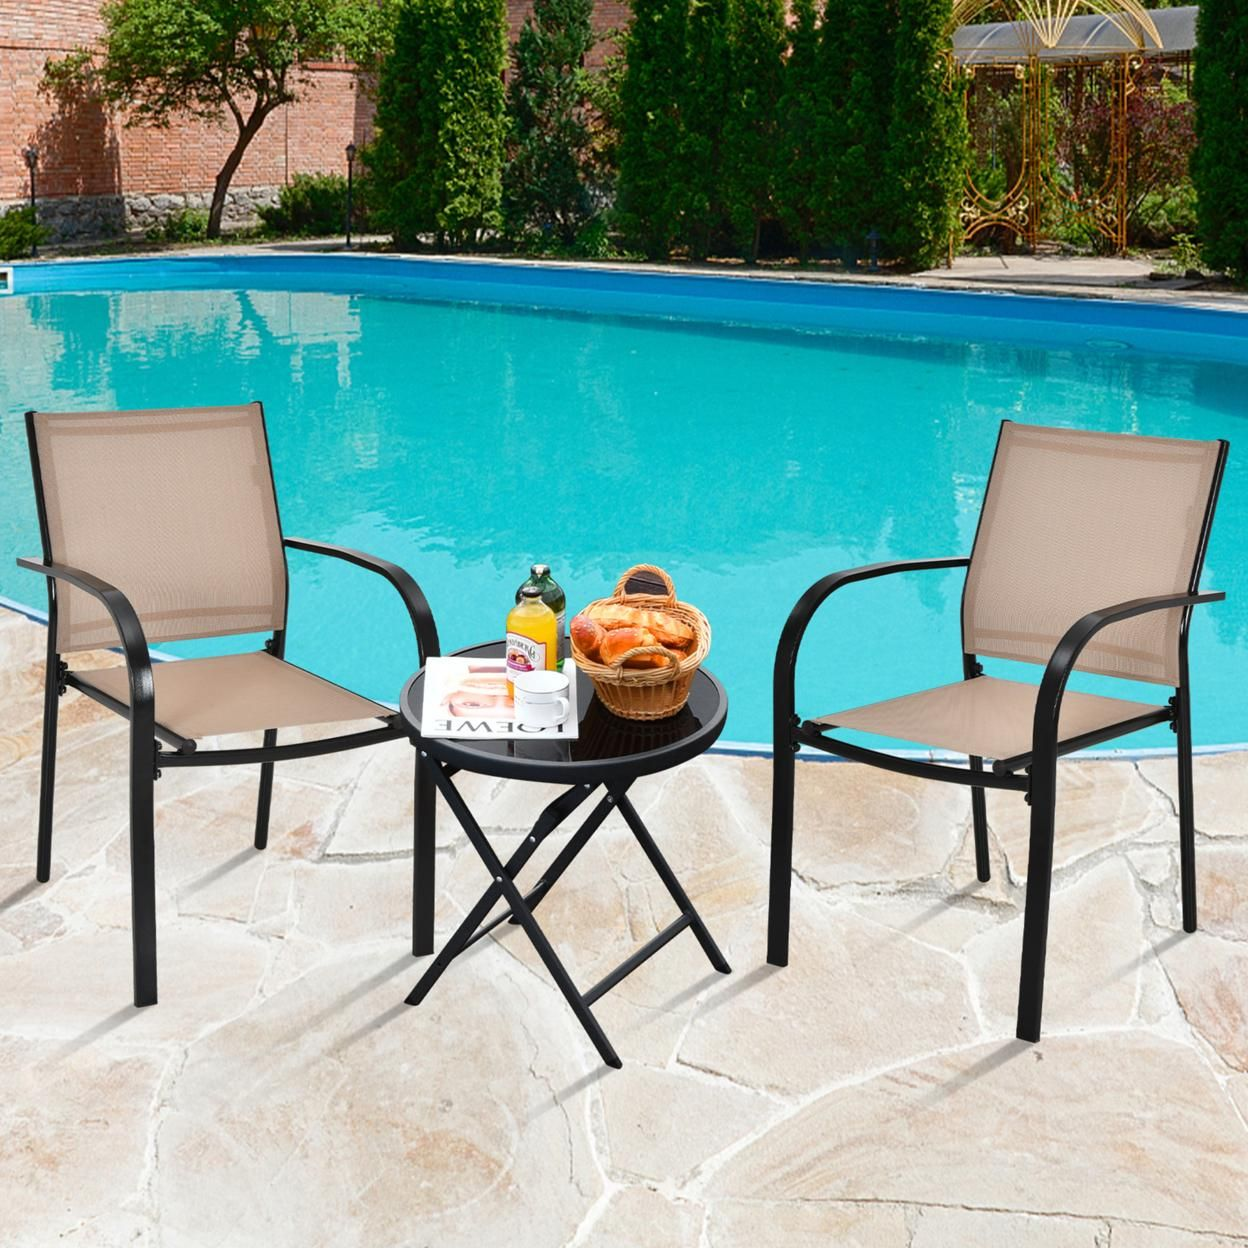 Gymax 4PCS Stackable Patio Dining Chair w/ Steel Frame & Quick-drying Fabric